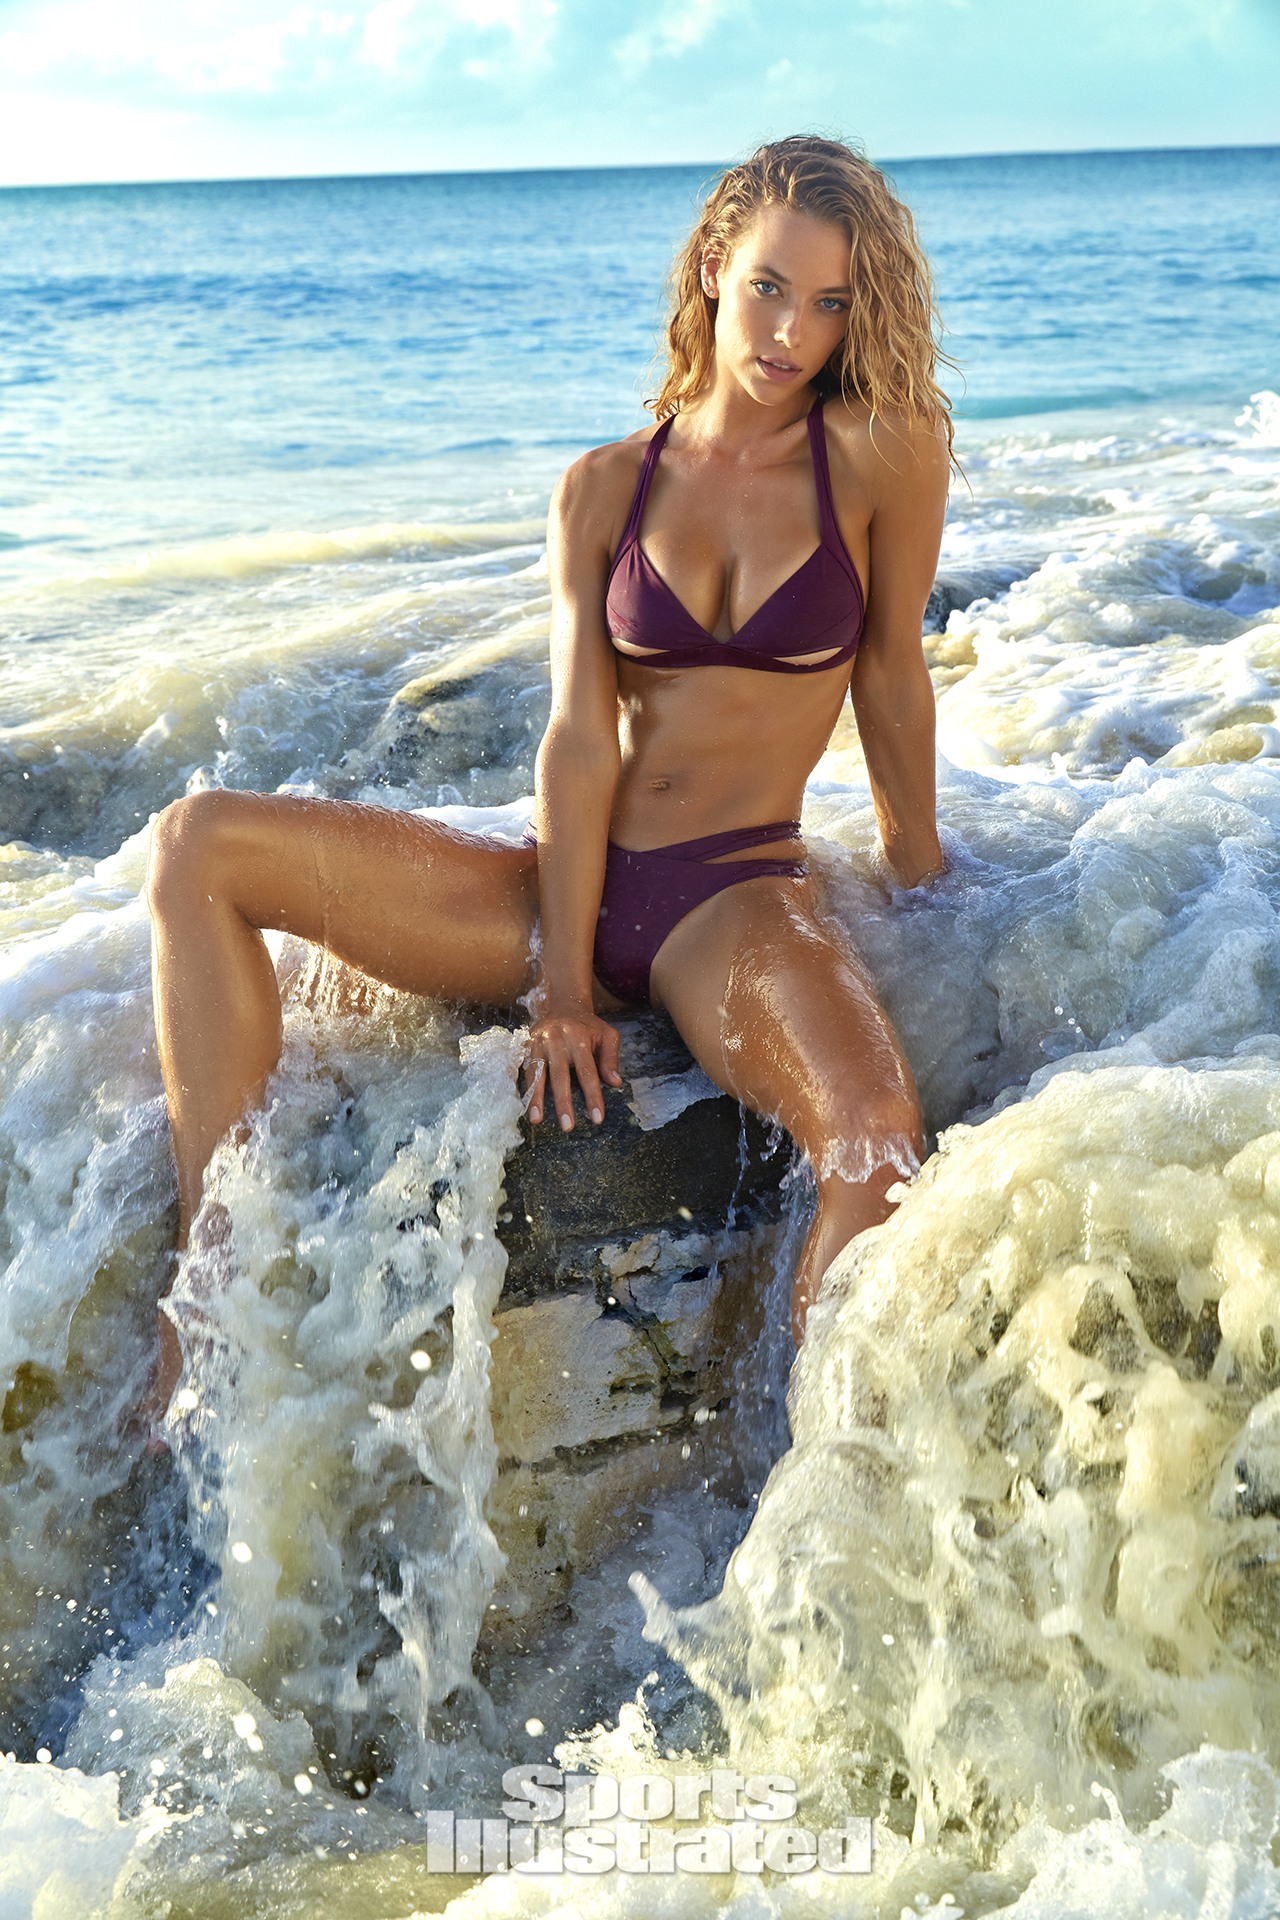 Hannah Ferguson was photographed by James Macari in Turks & Caicos. Swimsuit by Aquarella Swimwear.